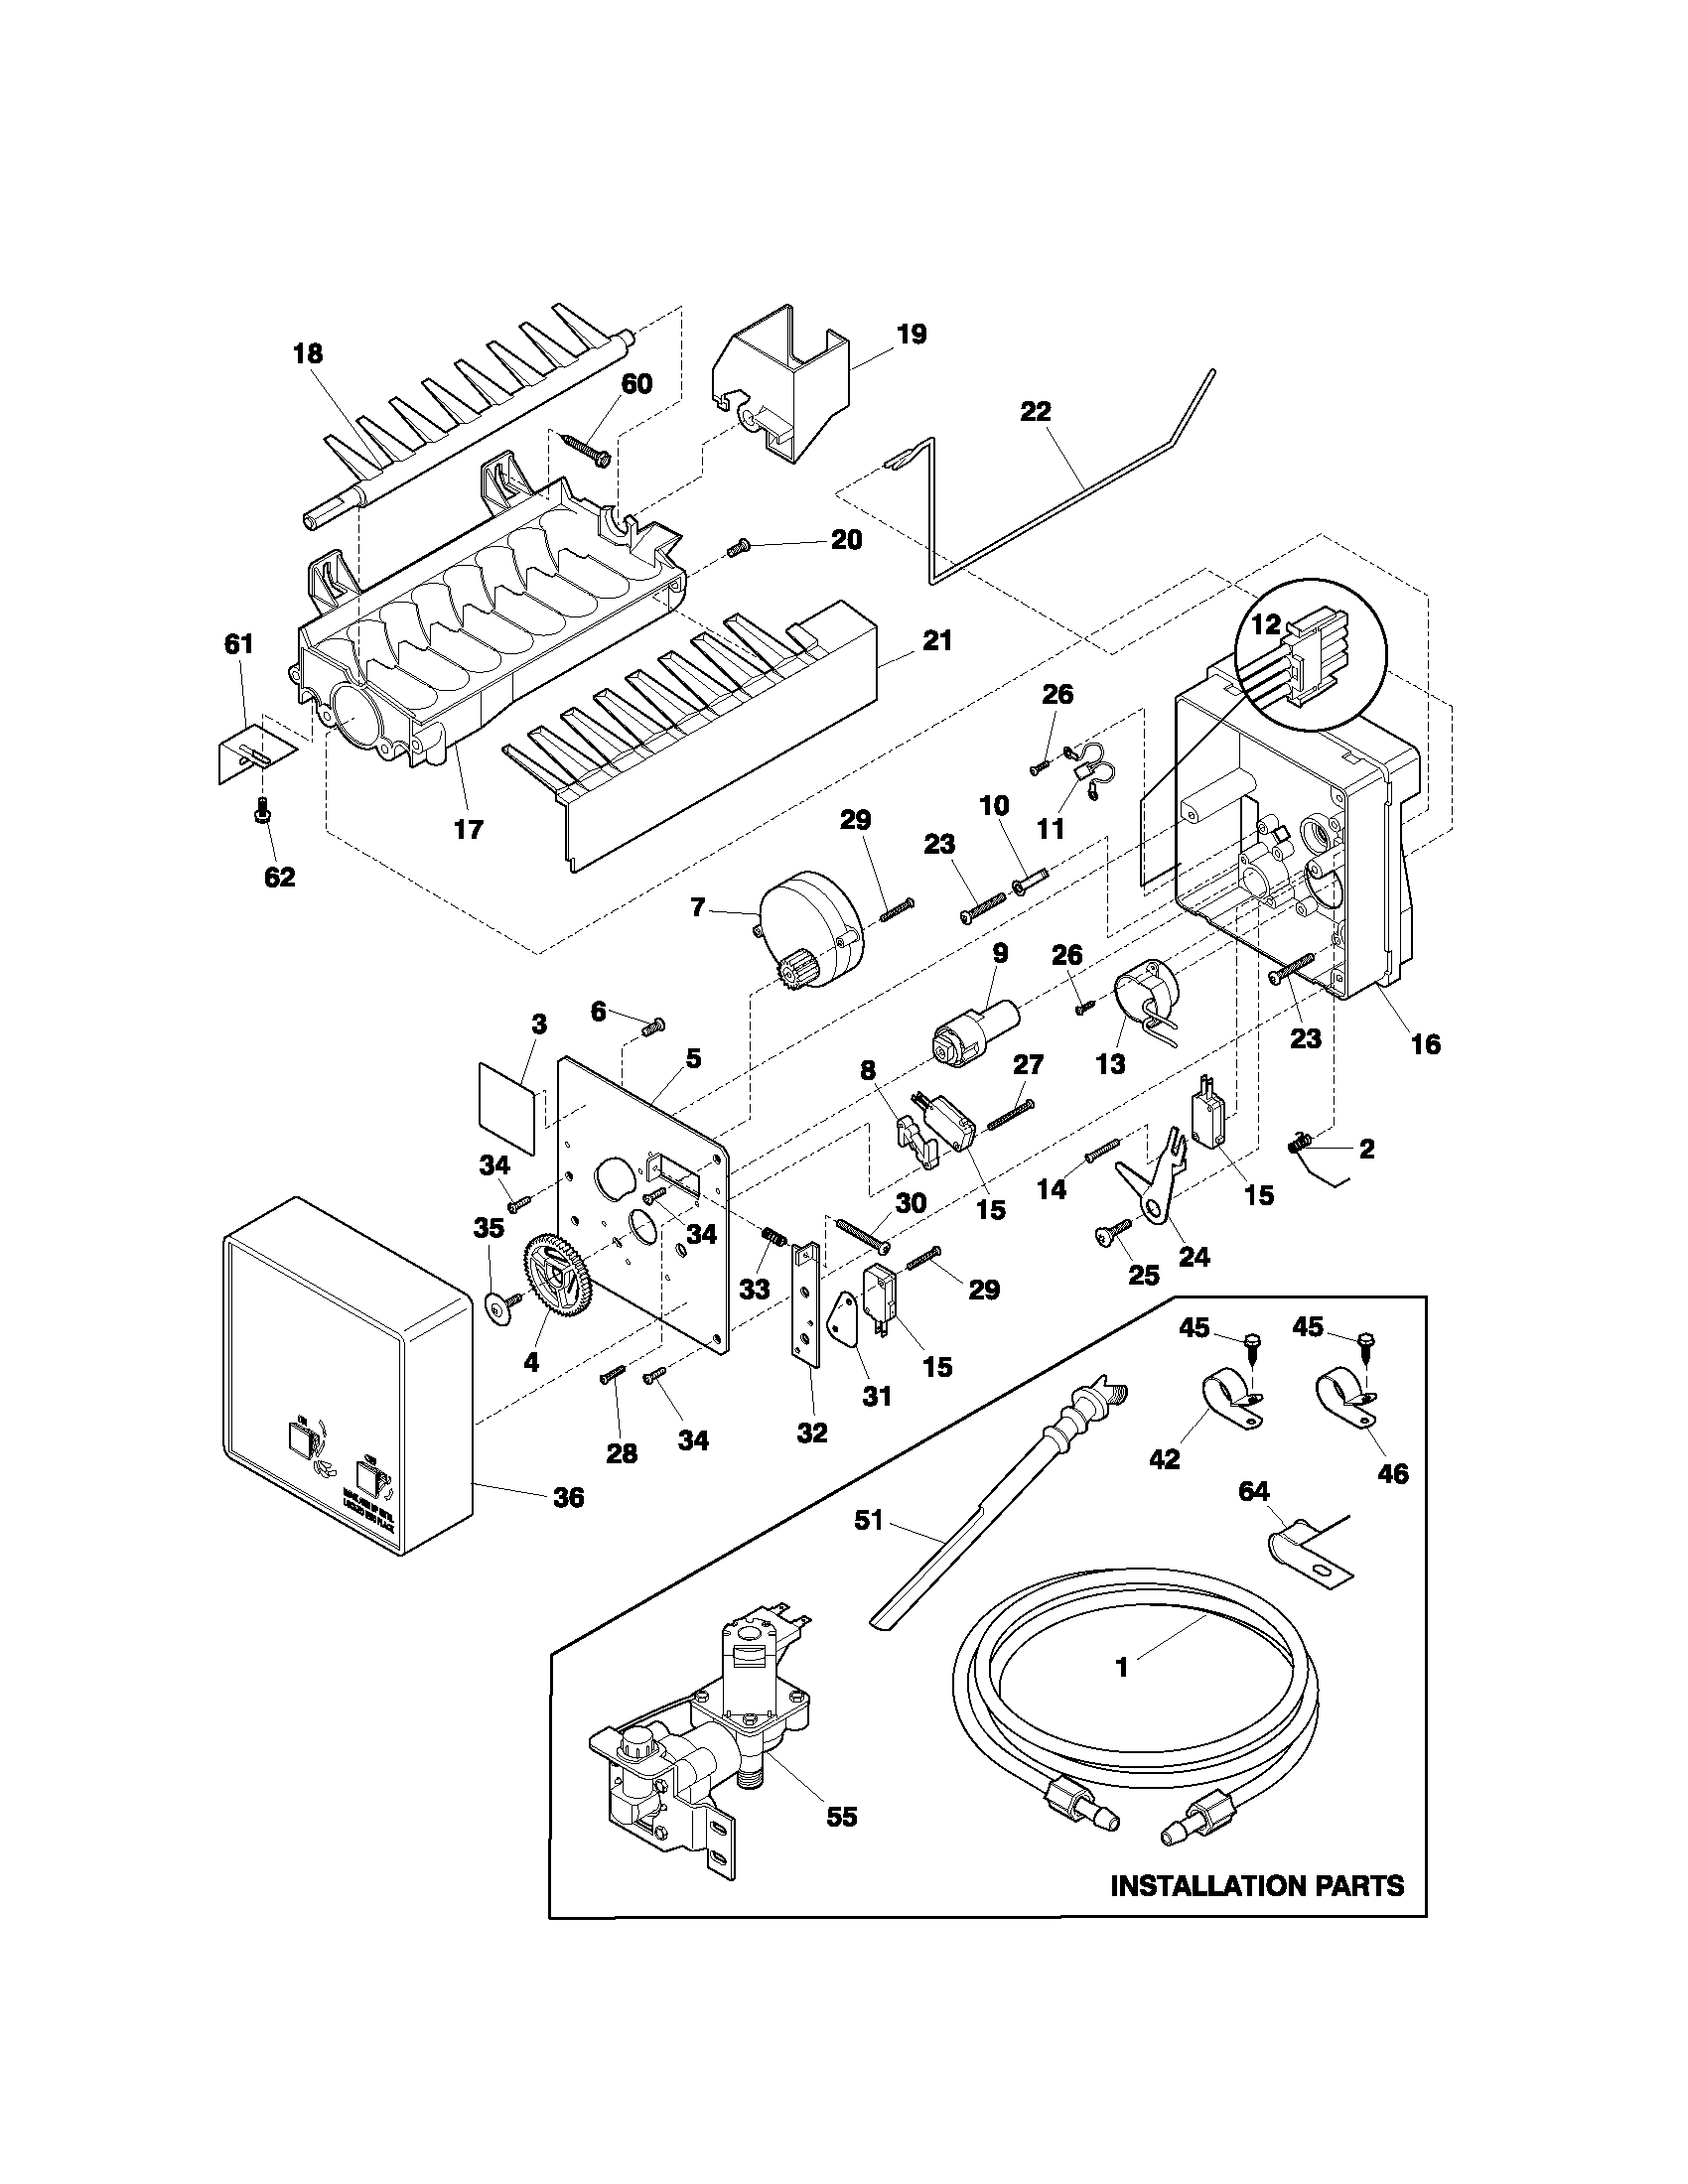 ICE MAKER Diagram & Parts List for Model 25371132105